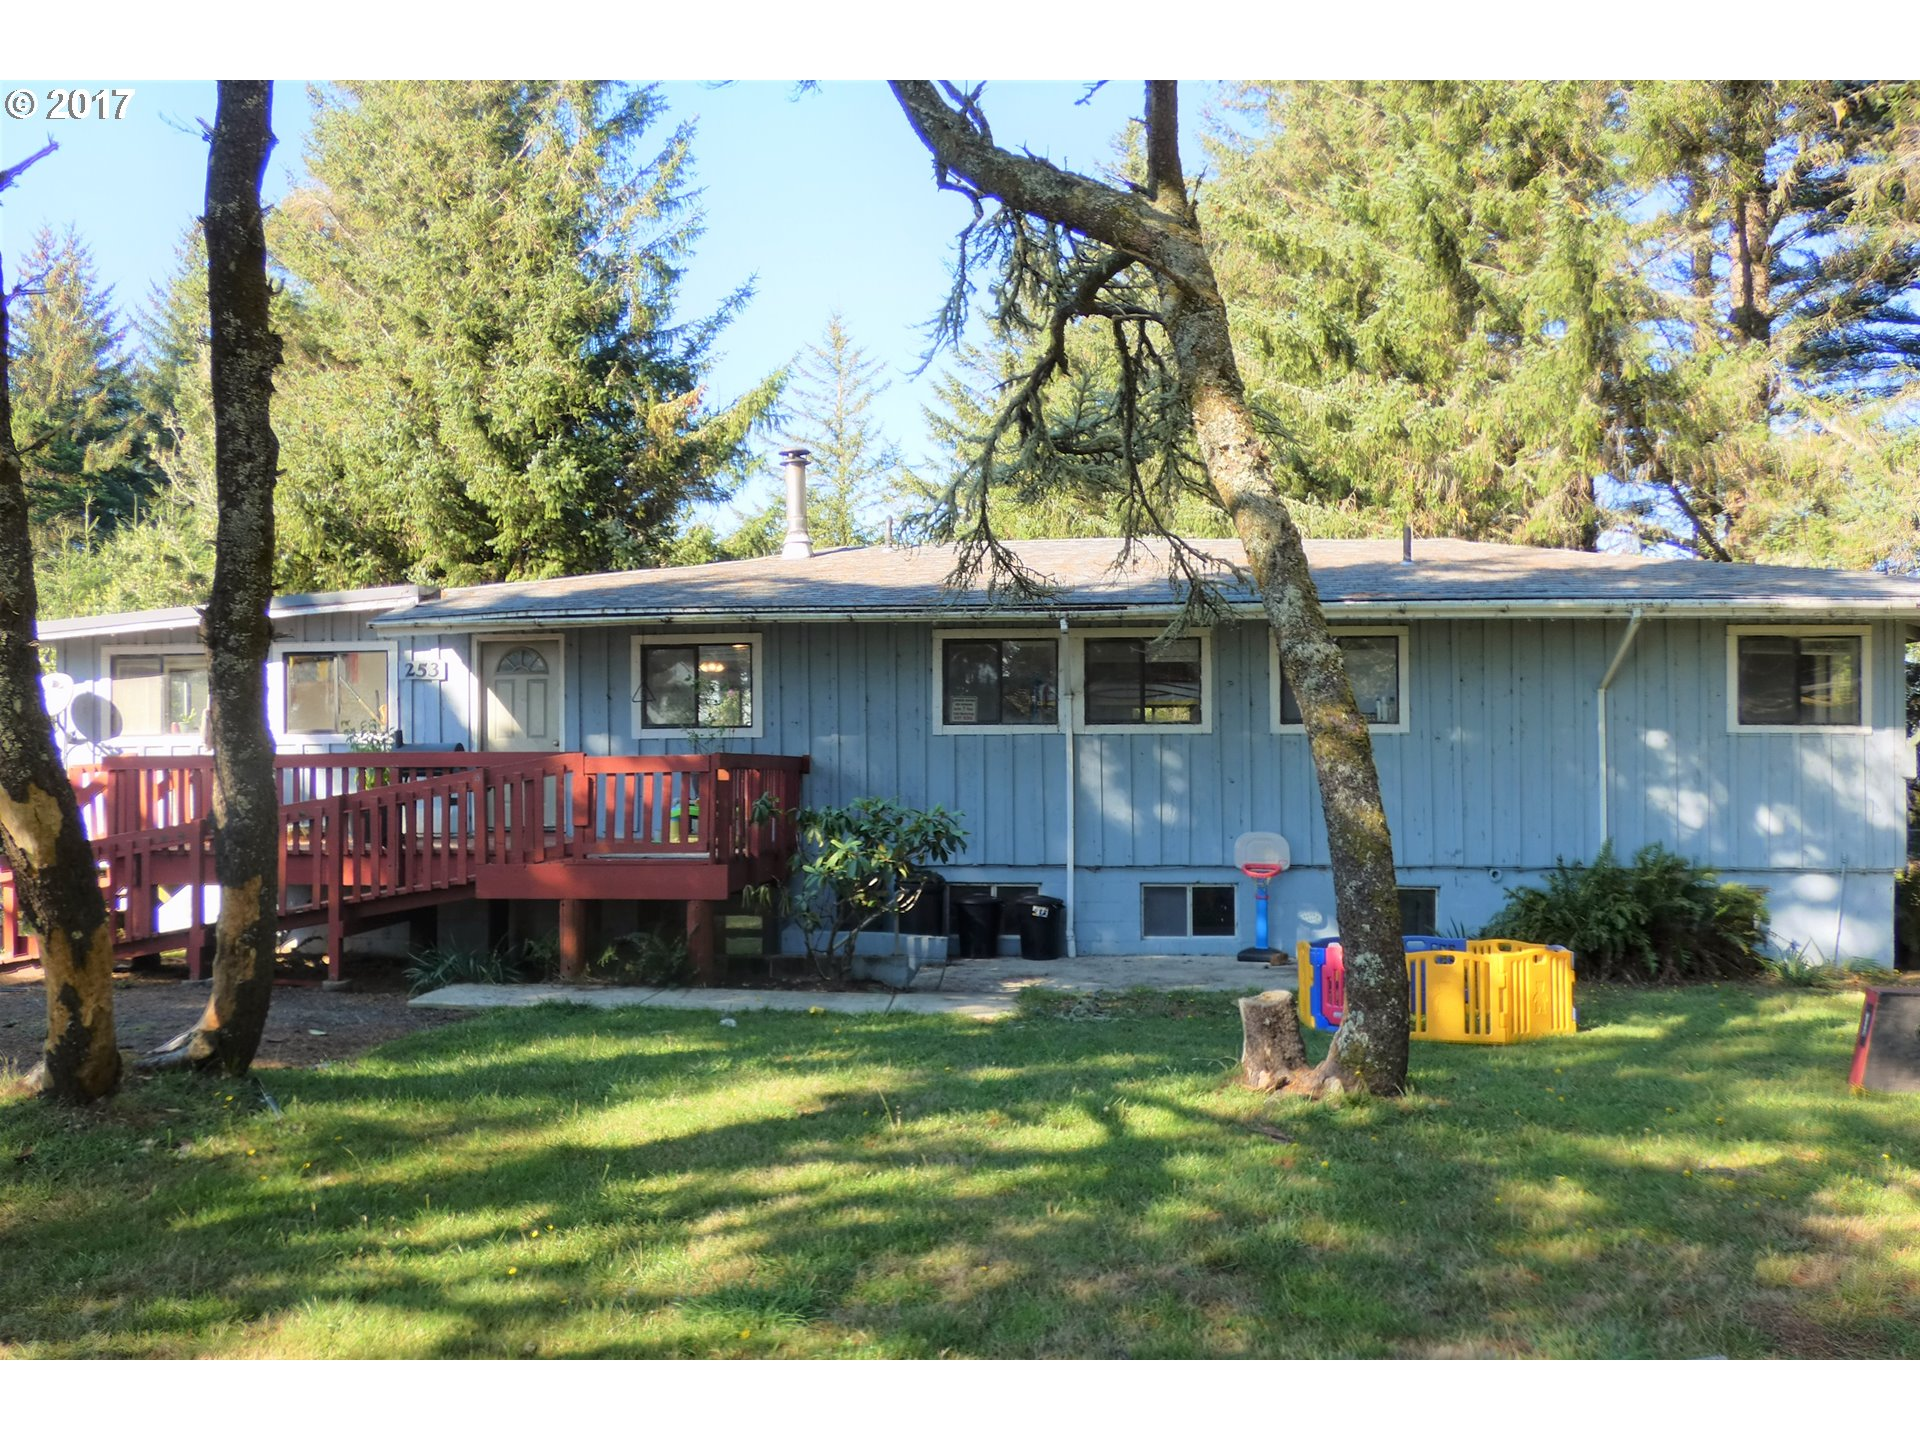 253 COAST GUARD HILL RD, PORT ORFORD, OR 97465